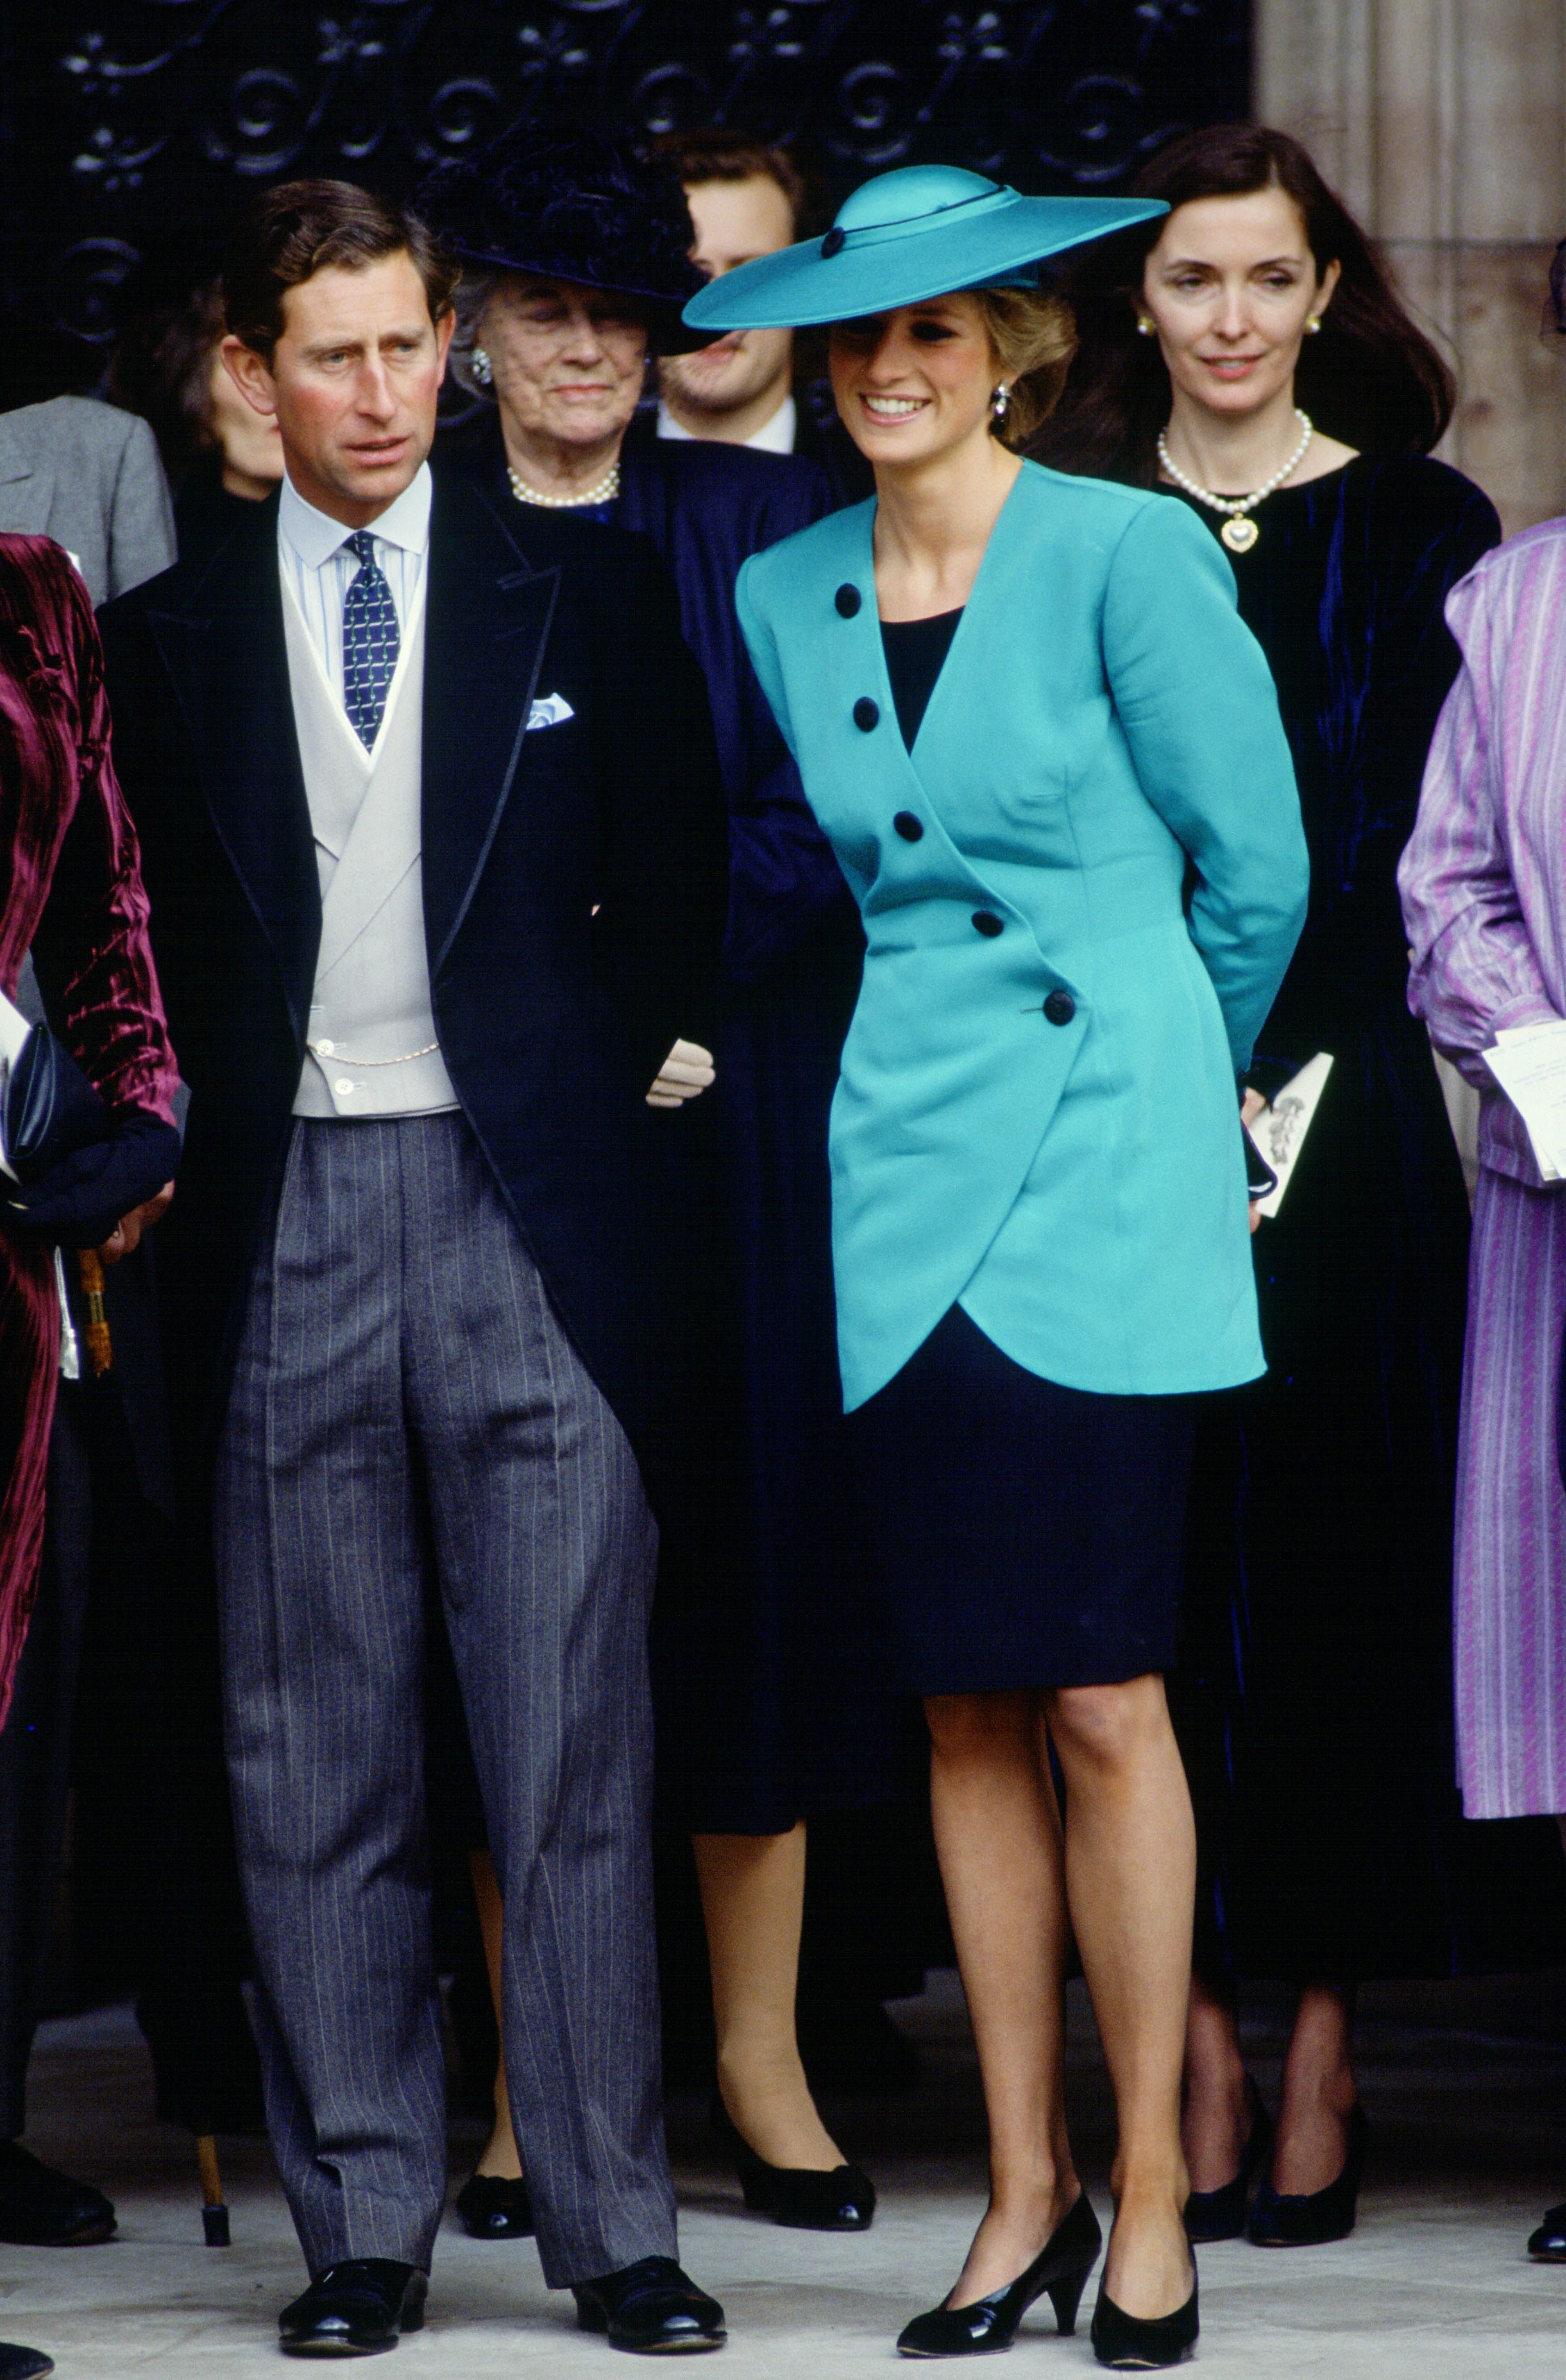 Prince Charles and Princess Diana in 1988   Source: Getty Images